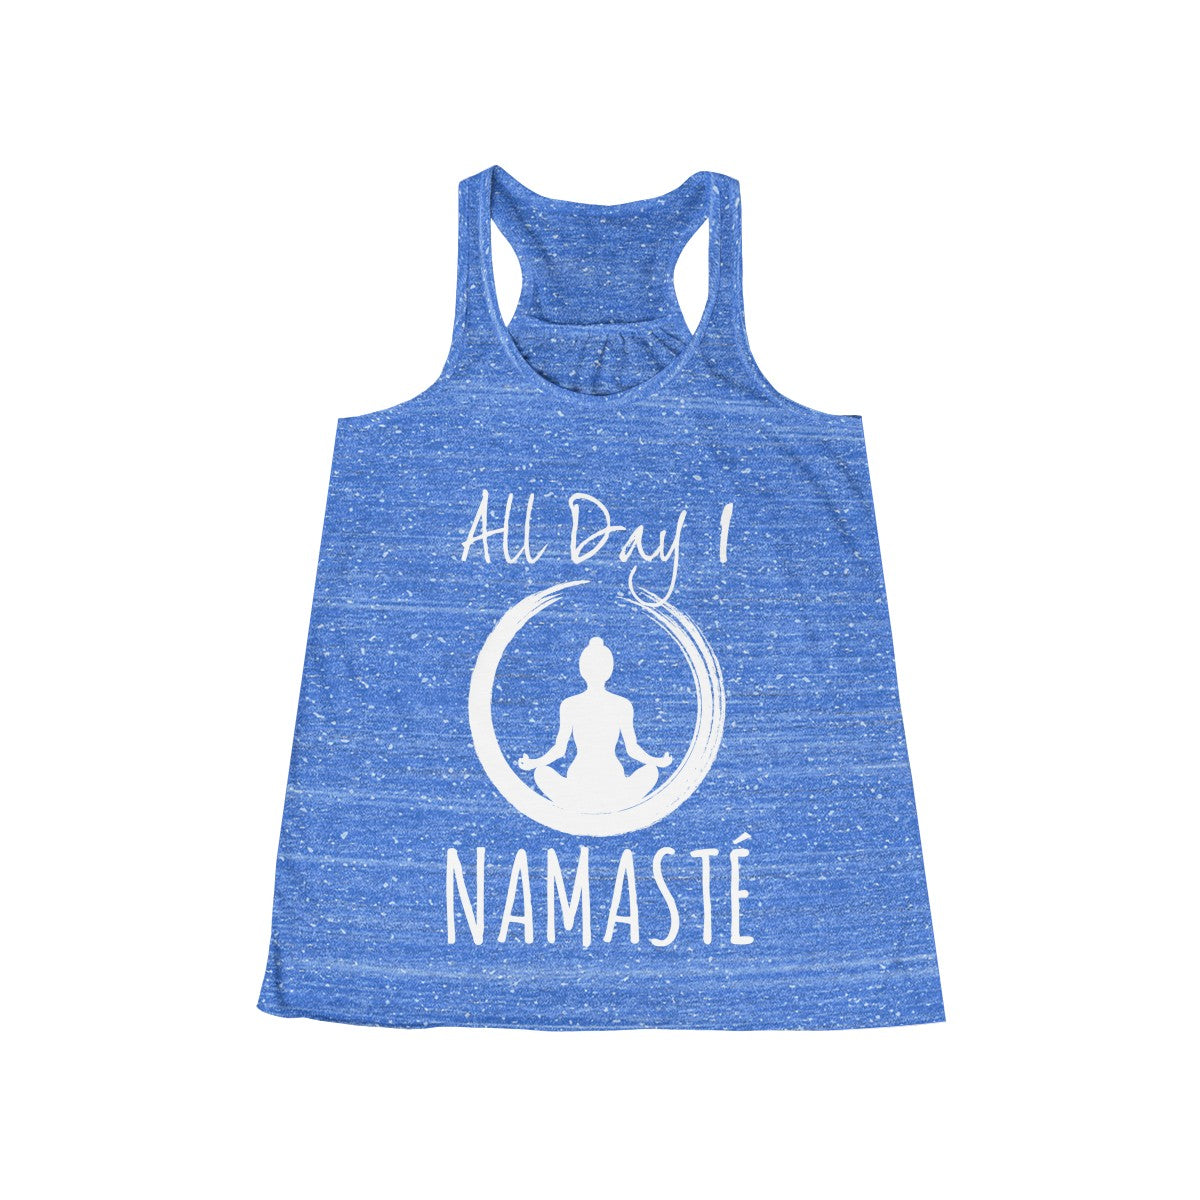 All Day I Namaste Flowy Yoga Racerback Tank